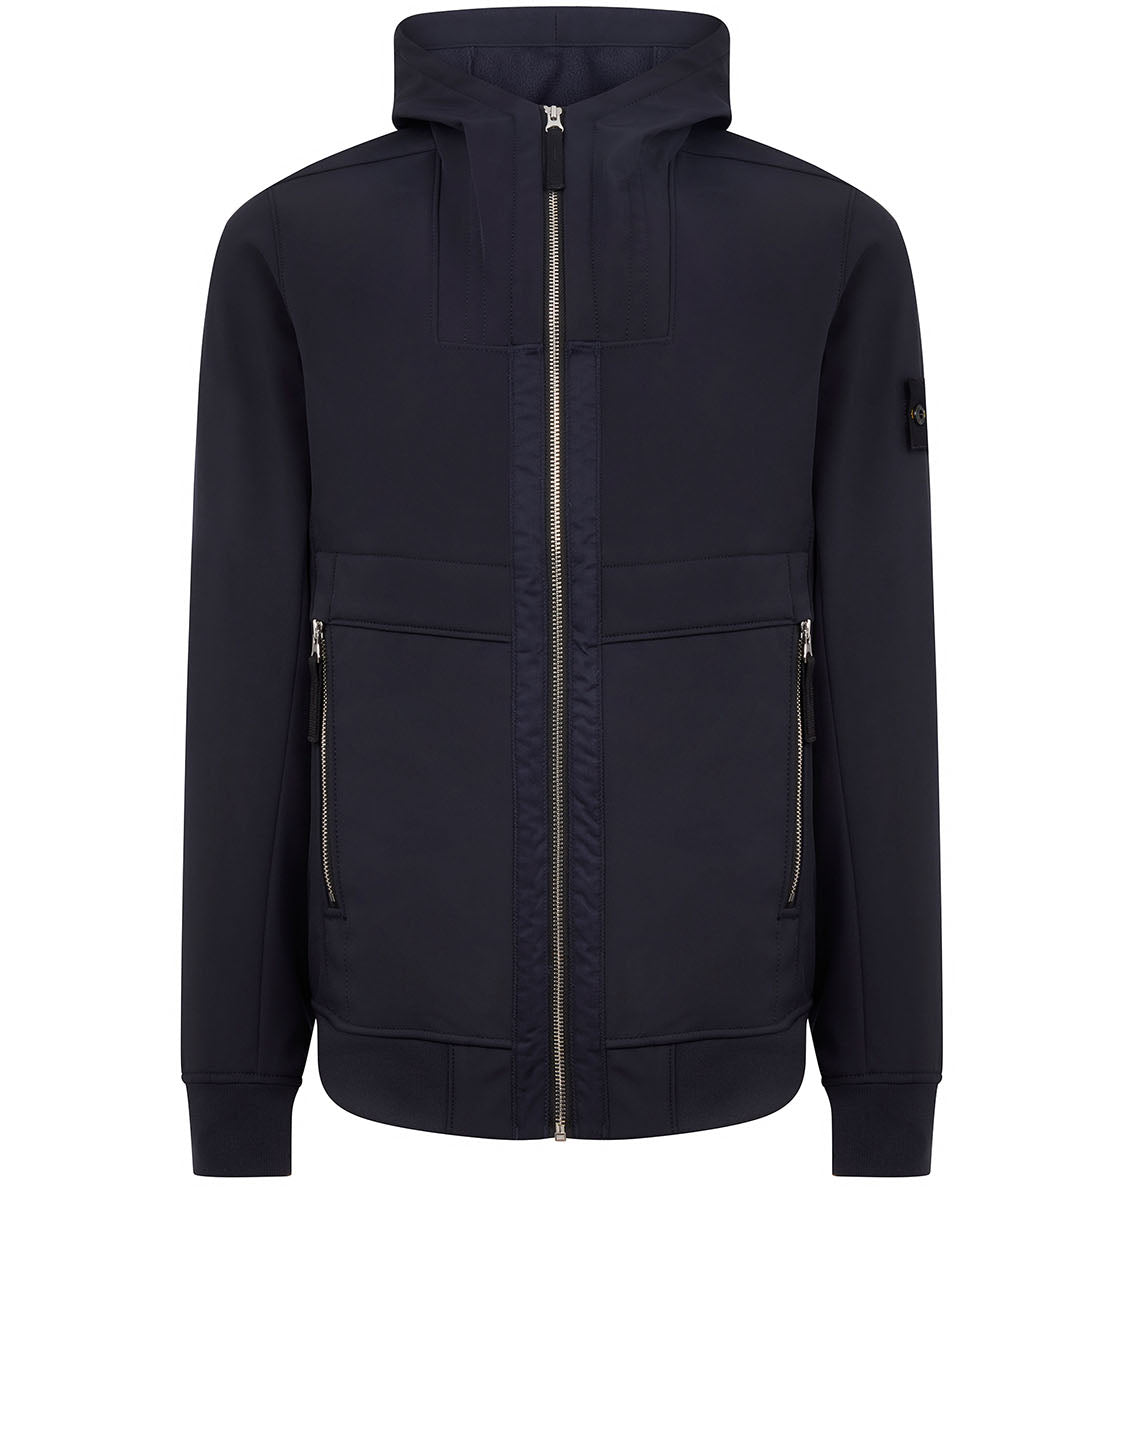 Q0222 Soft Shell-R Hooded Jacket in Navy Blue